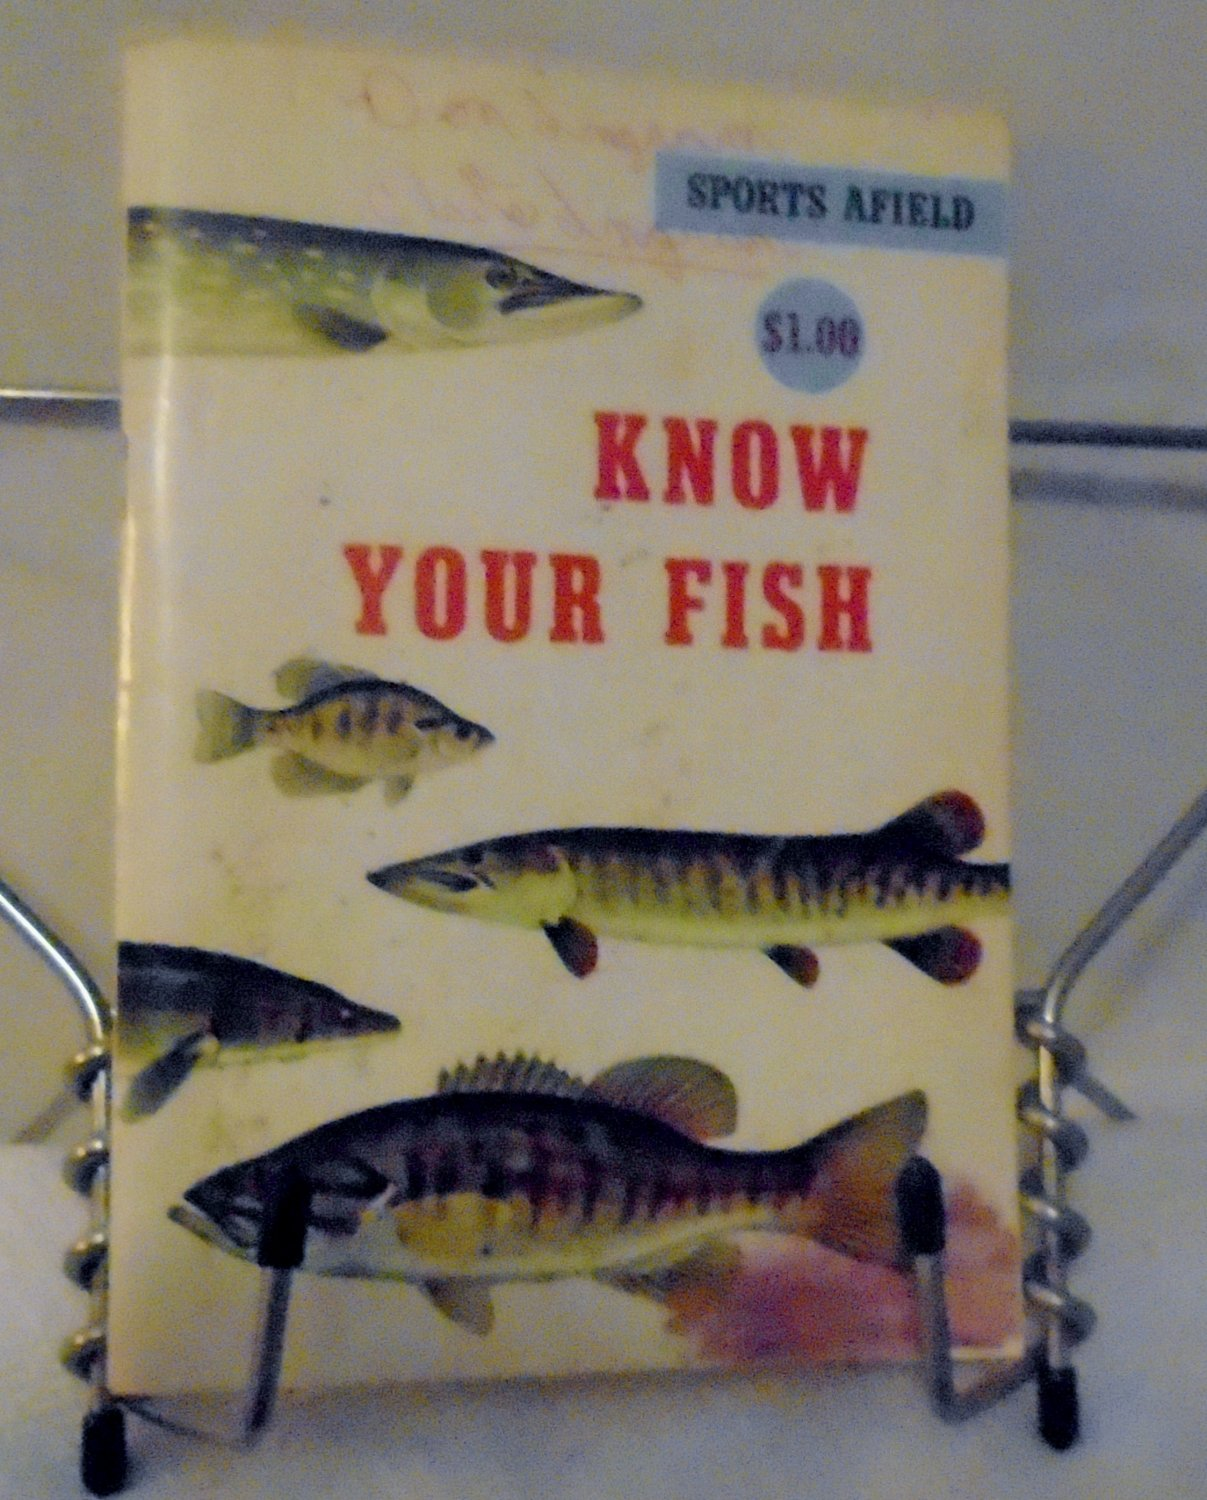 Know your fish paperback - A book  vintage 1960 sports afield tom dolan